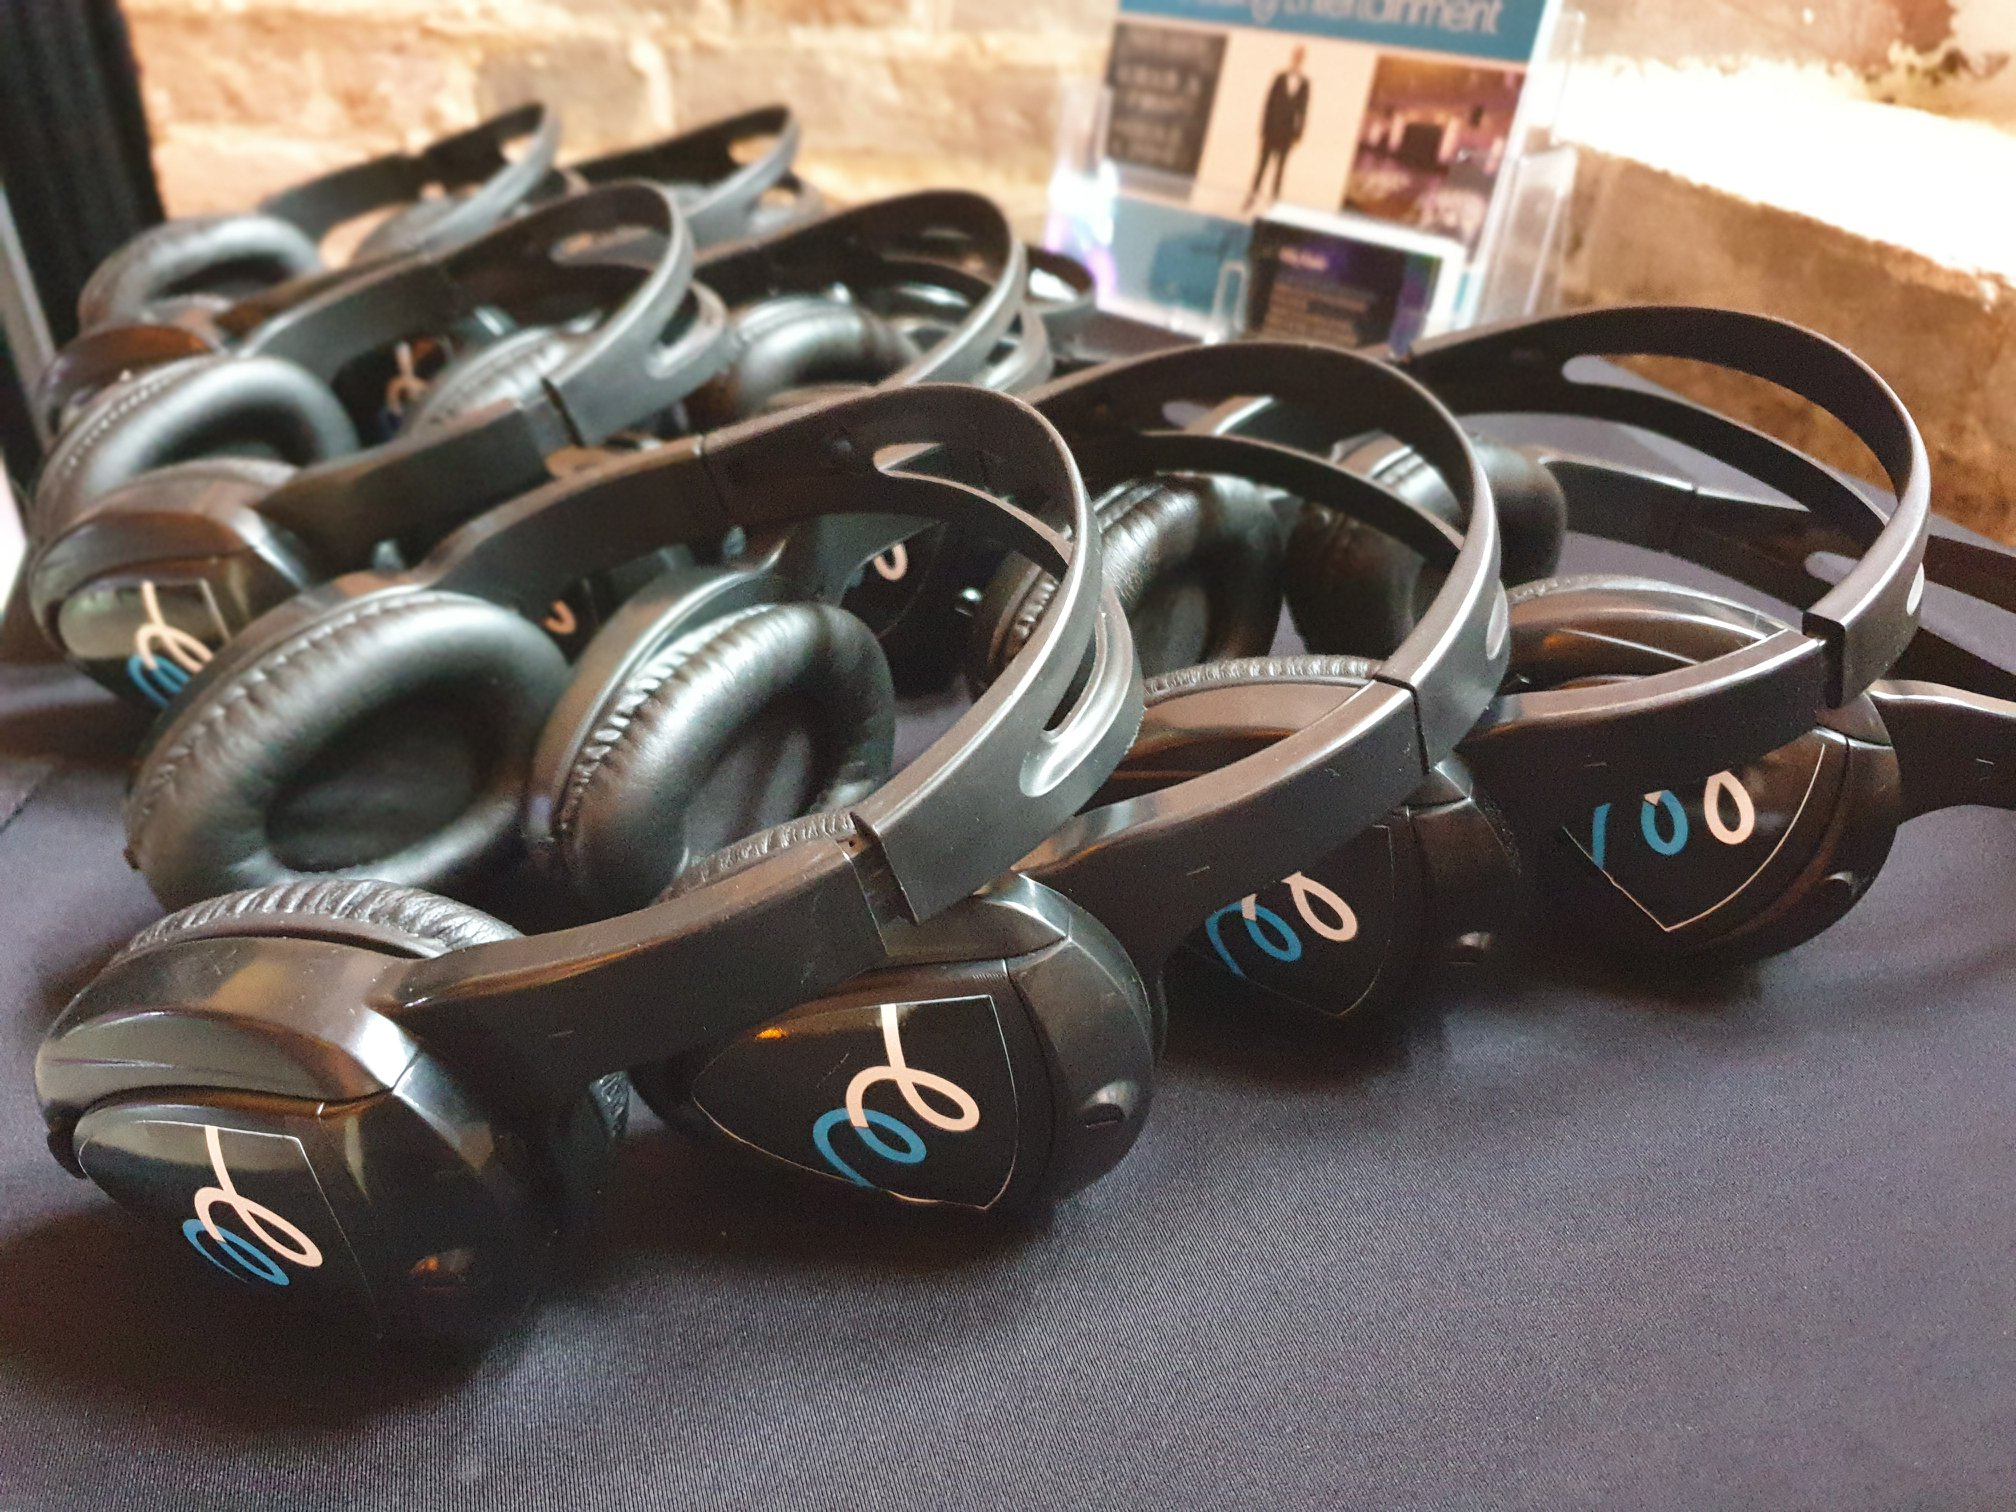 Headphones - With over 300 headsets now available, the perfect addition to any wedding or party. Sing like no one is listening, dance like no one is watching!!! Please message us if you would like to add this to your package, or interested in booking.